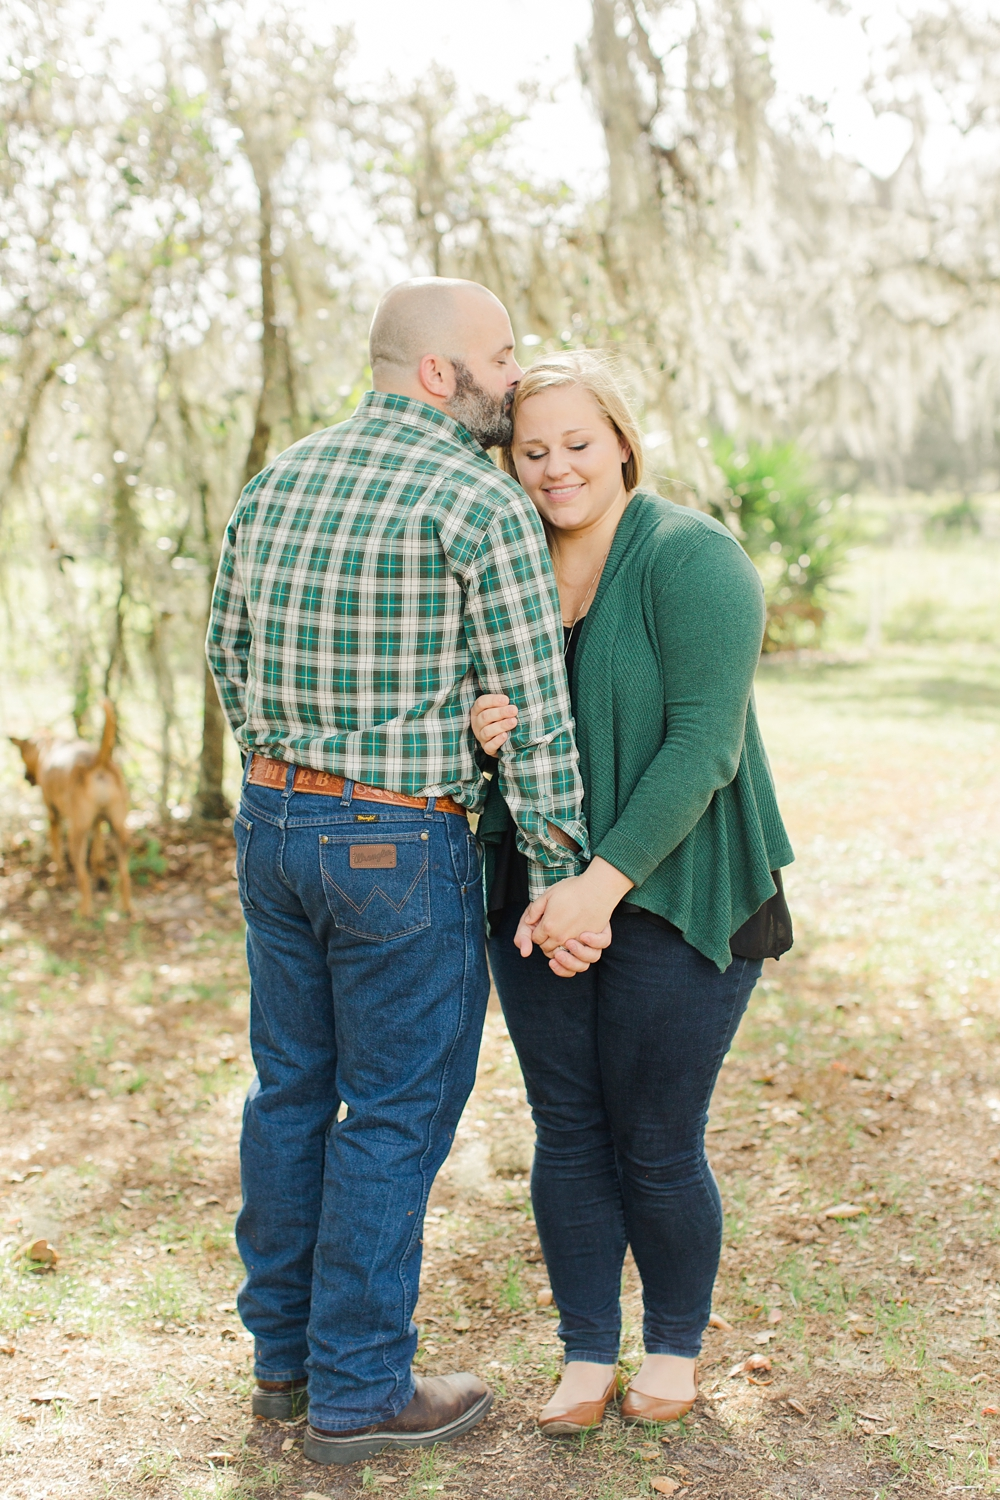 Ashley Holstein Photography | Wauchula Florida Family Session | Film Photographer